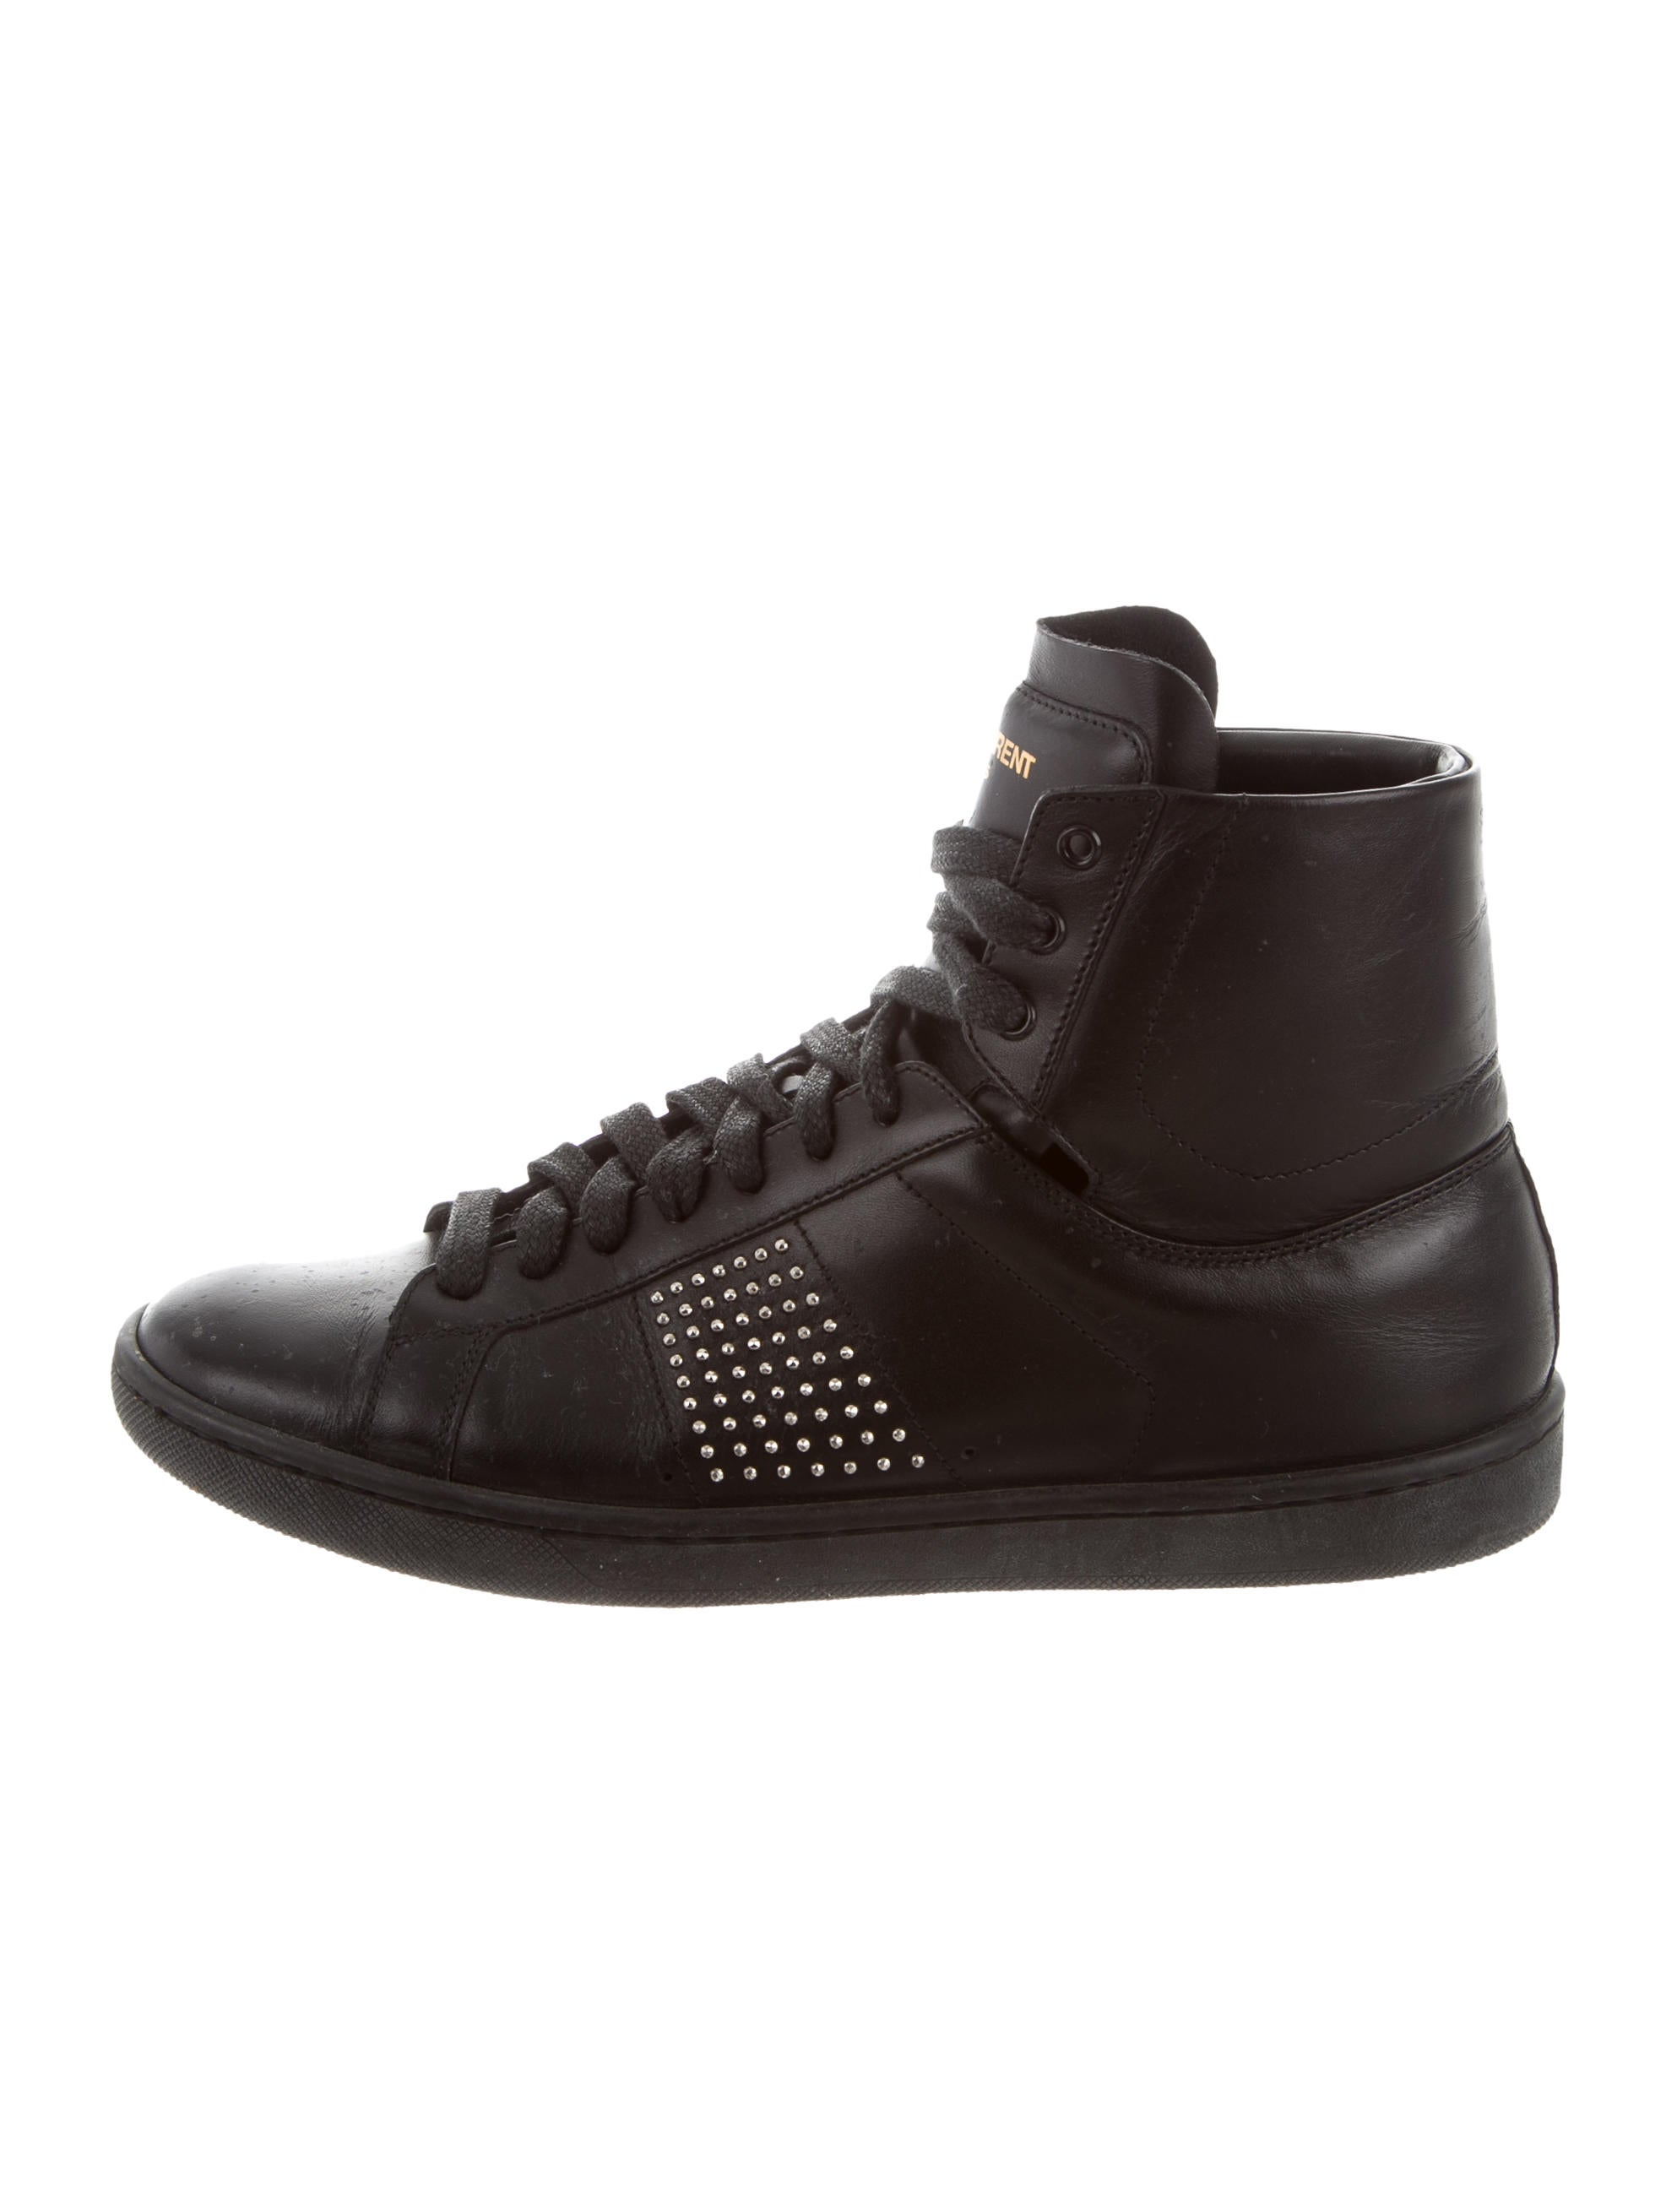 Saint Laurent SL/01H Studded Sneakers deals cheap online Cheapest sale online discount limited edition gRkFN